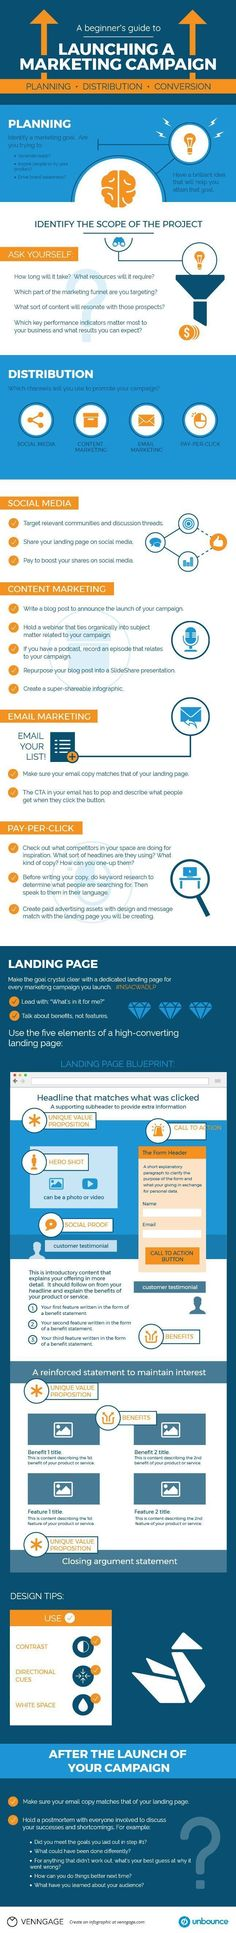 A Beginners Guide to Launching a Successful Marketing Campaign [Infographic] | Social Media Today #InfographicsSocialMedia